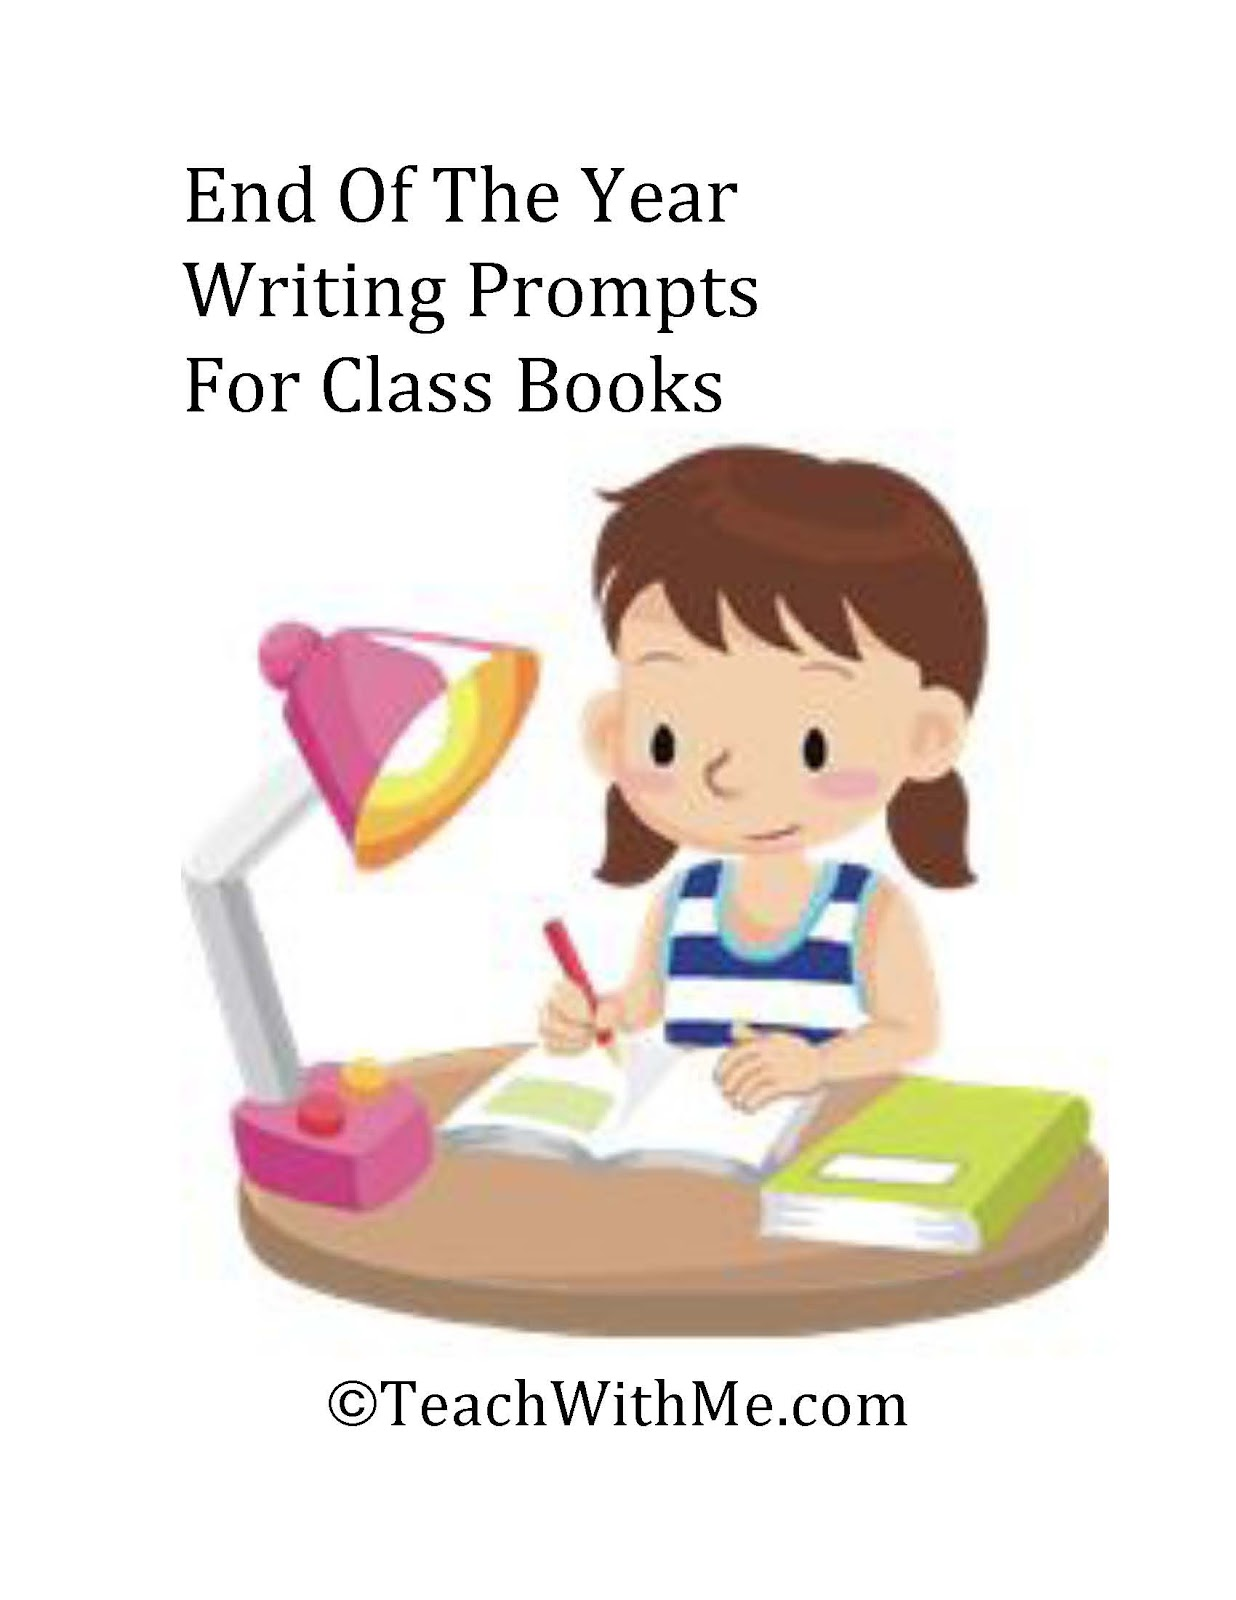 classroom writing prompts Need some interesting writing prompts for your creative writing or language arts class stageoflifecom features an entire year's worth of teen essay writing prompts.